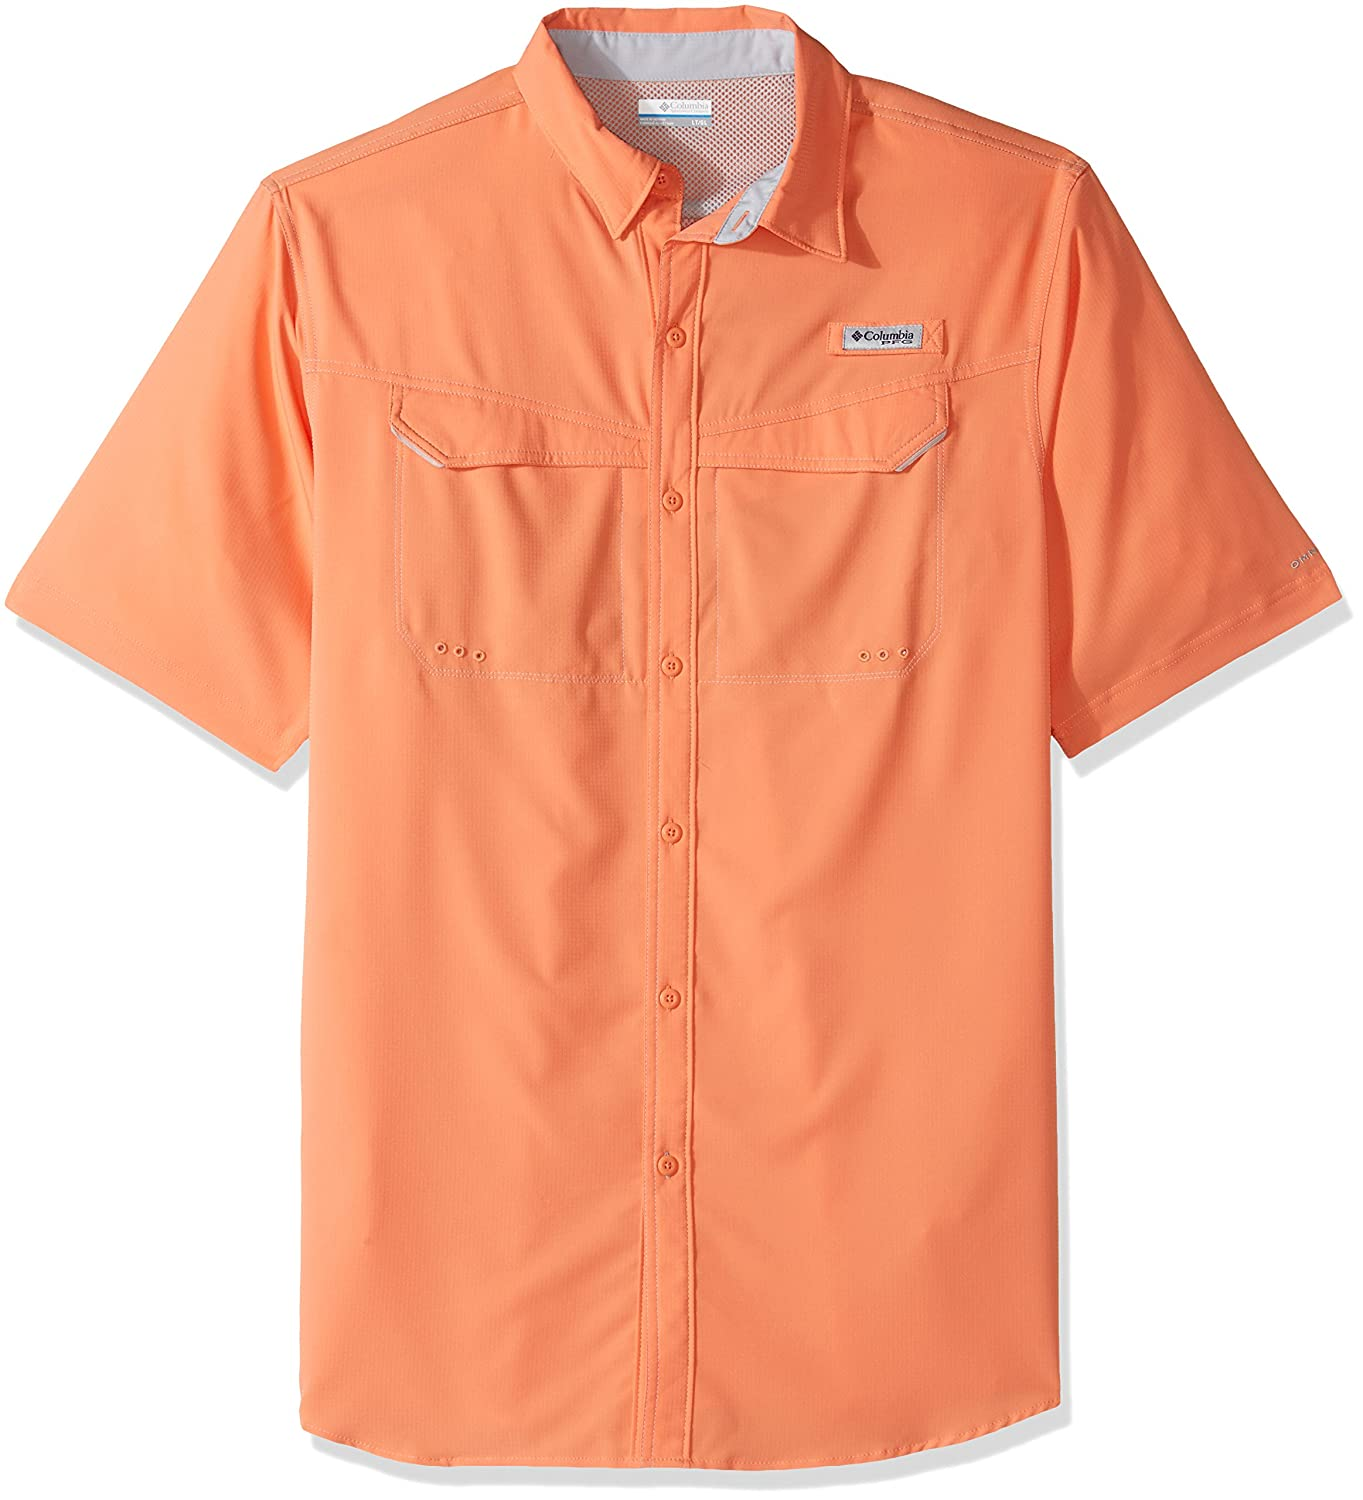 Columbia Men's Niedrig Drag Offshore Short Sleeve Shirt, Bright Peach, Large Tall